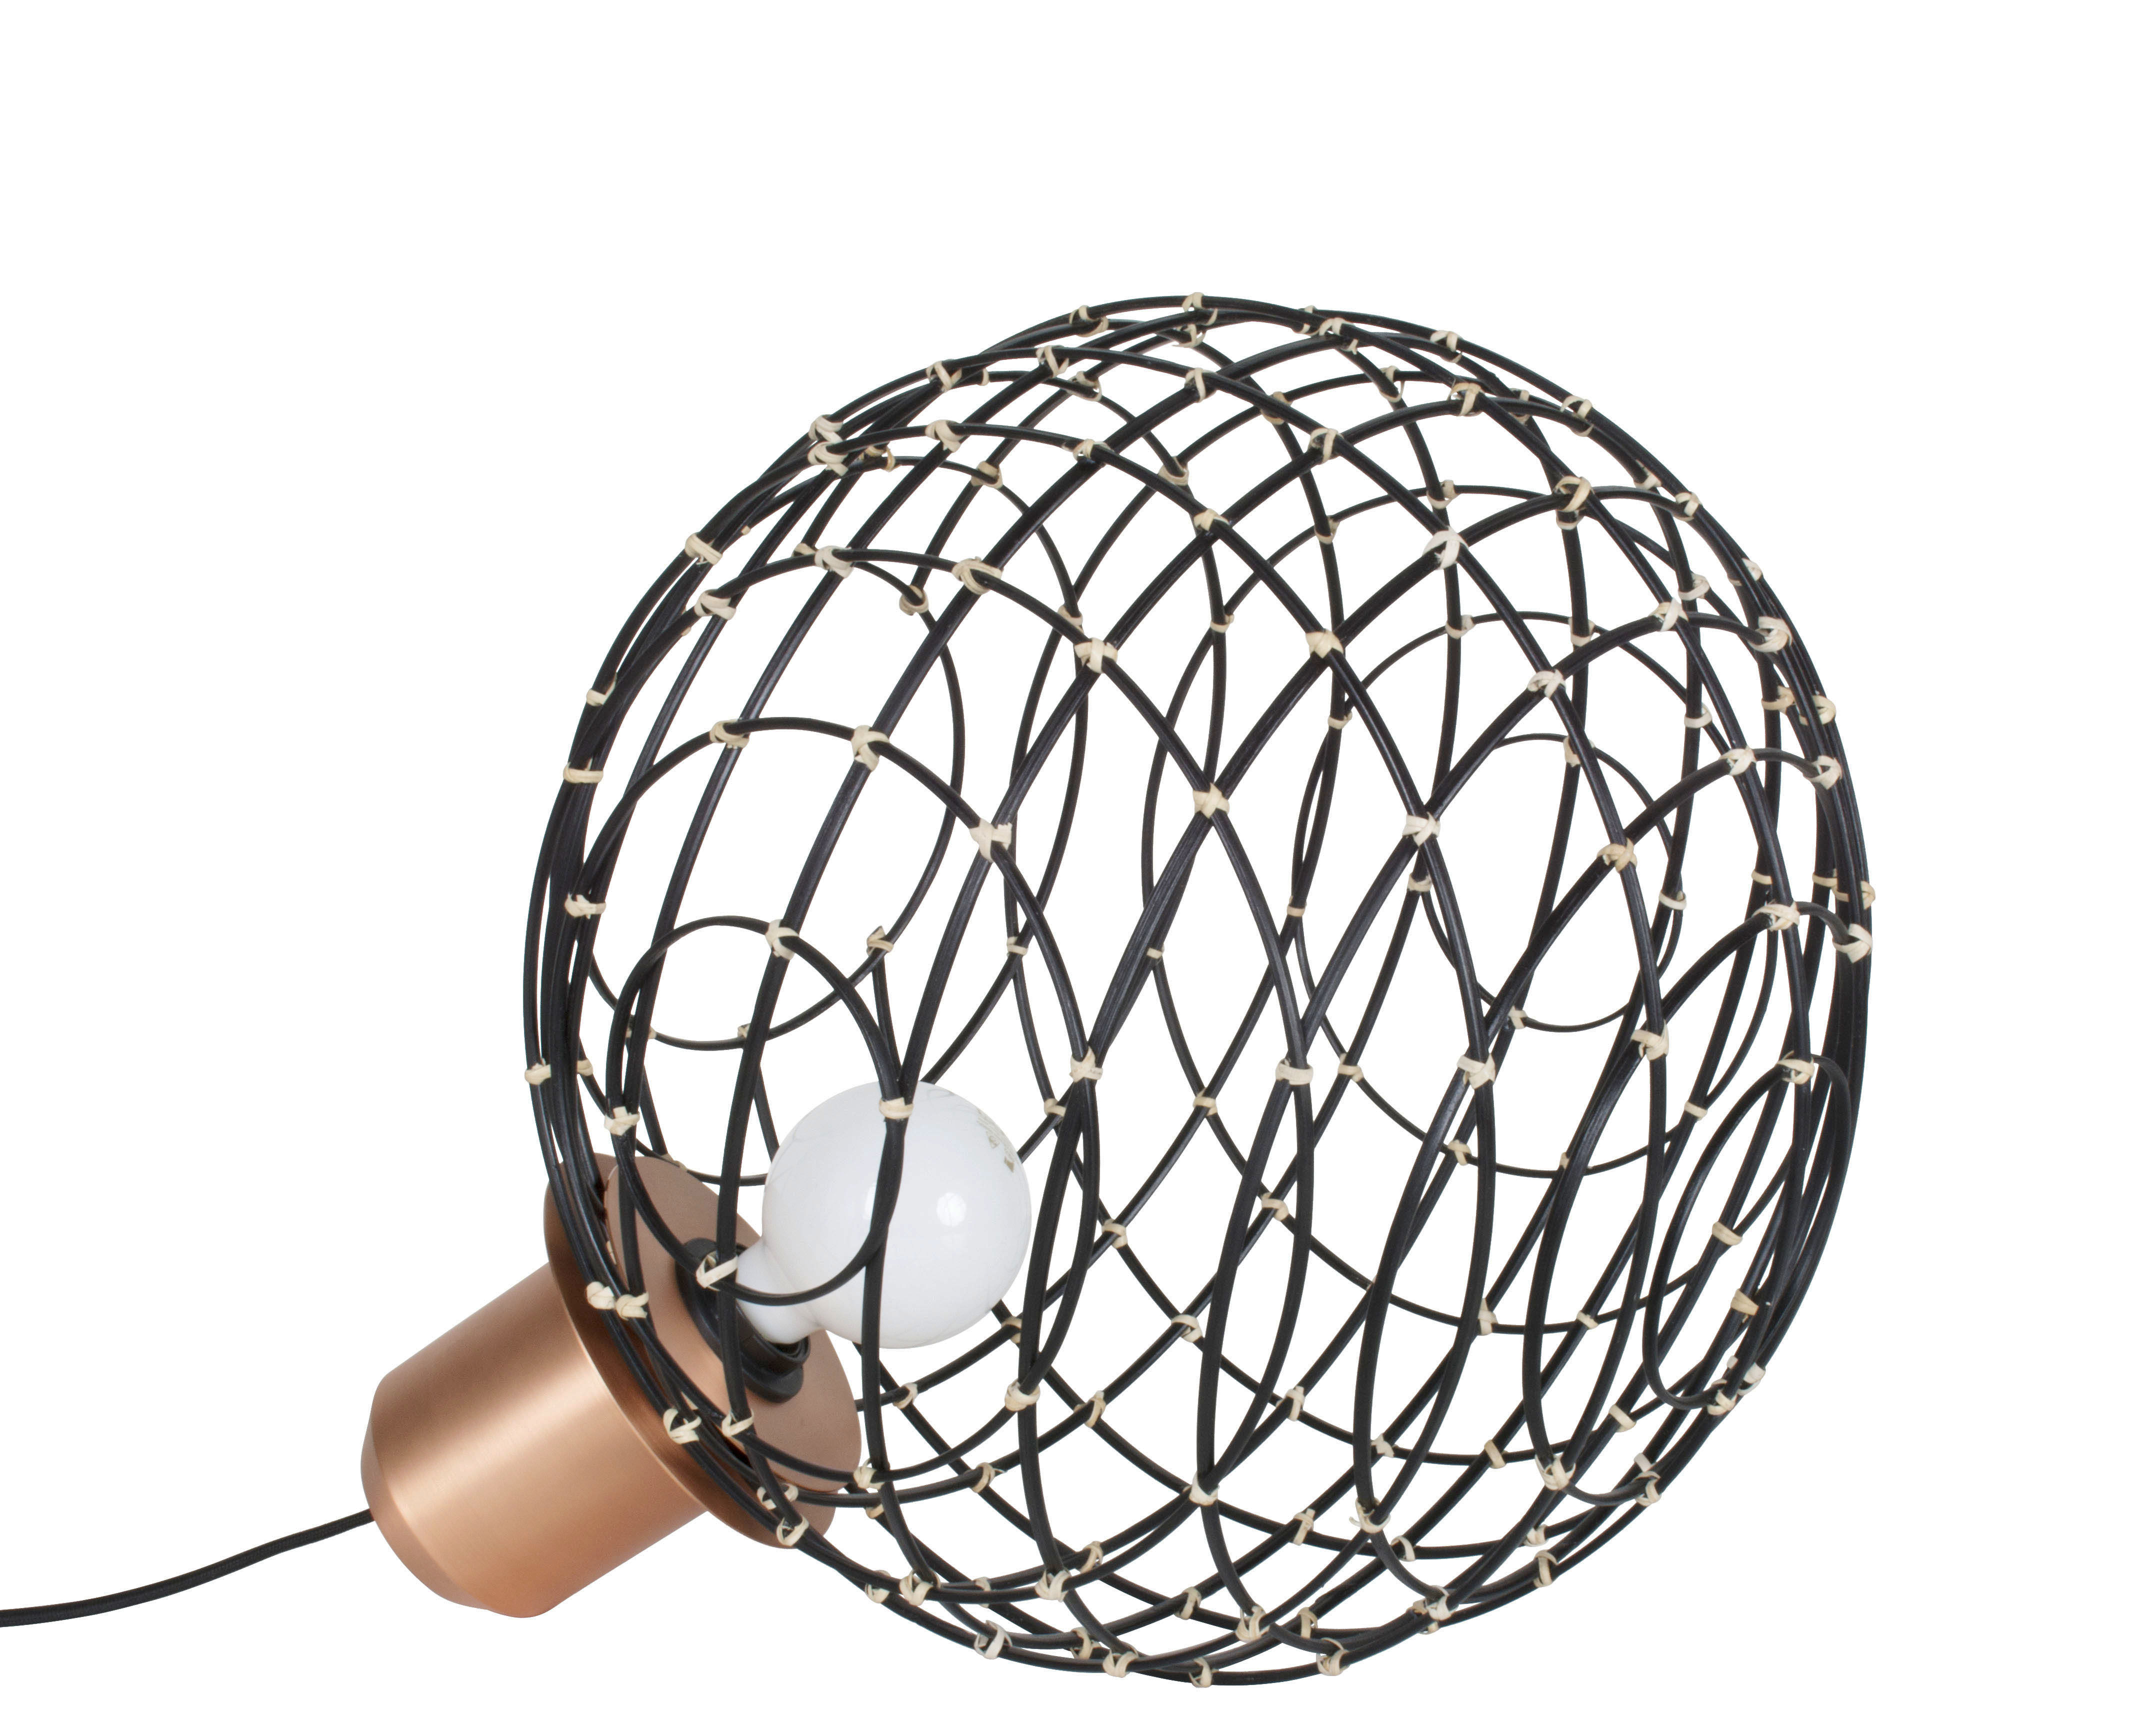 Lighting - Table Lamps - Sphere Medium Wireless lamp - / Bamboo - Ø 40 cm by Forestier - Black / Copper base - Bamboo, Metal